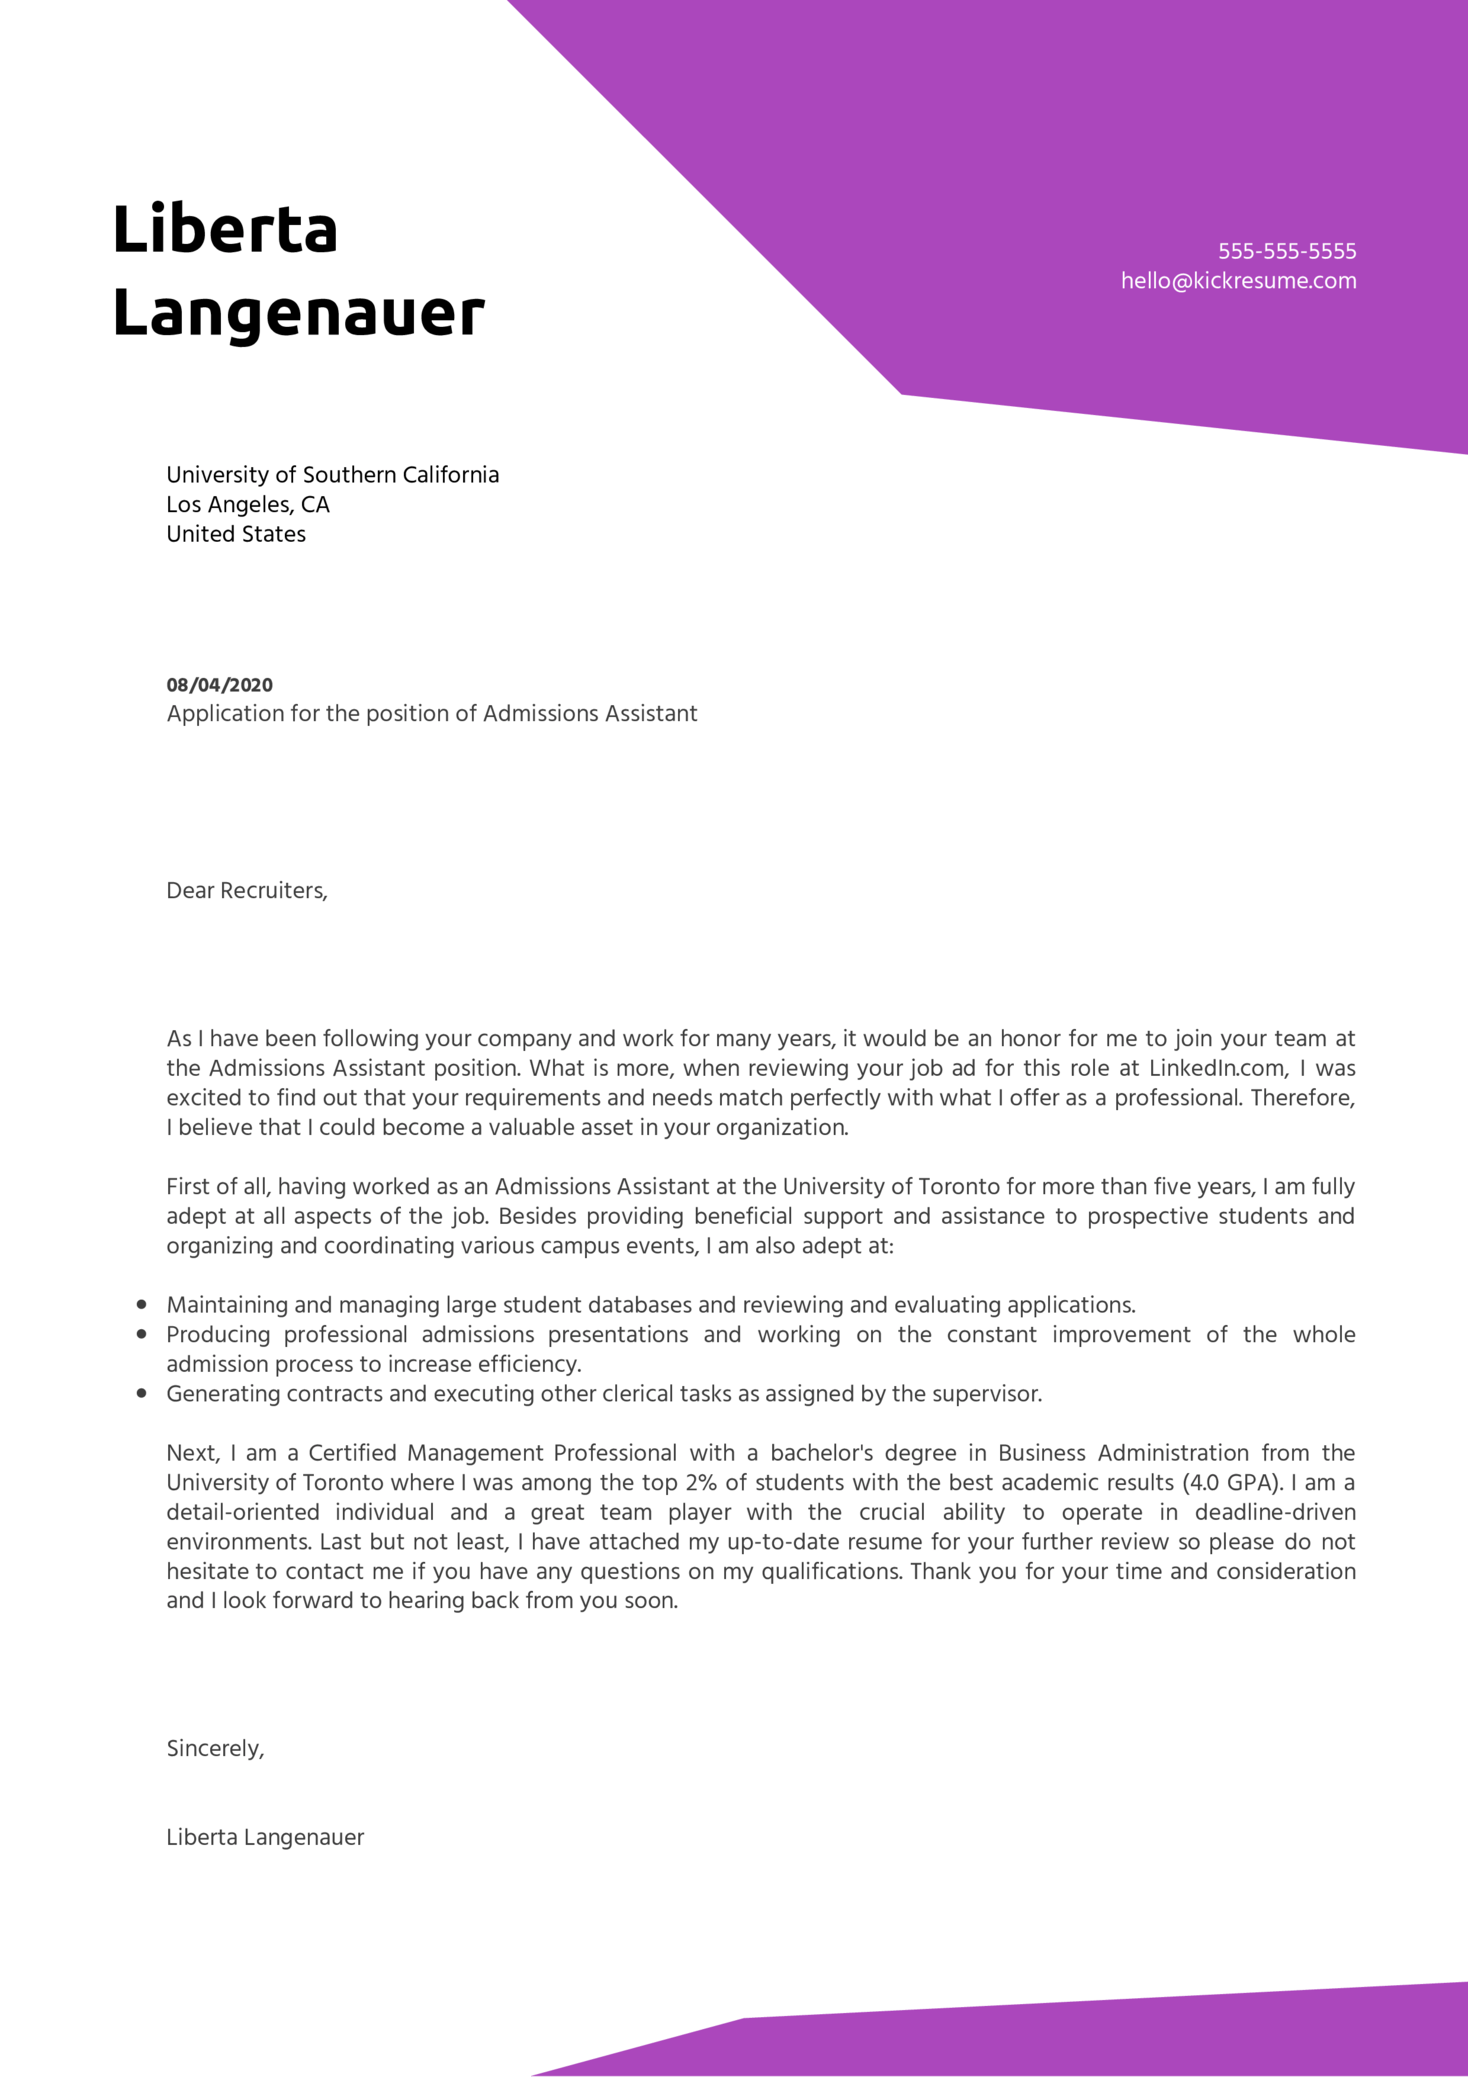 Admissions Assistant Cover Letter Sample